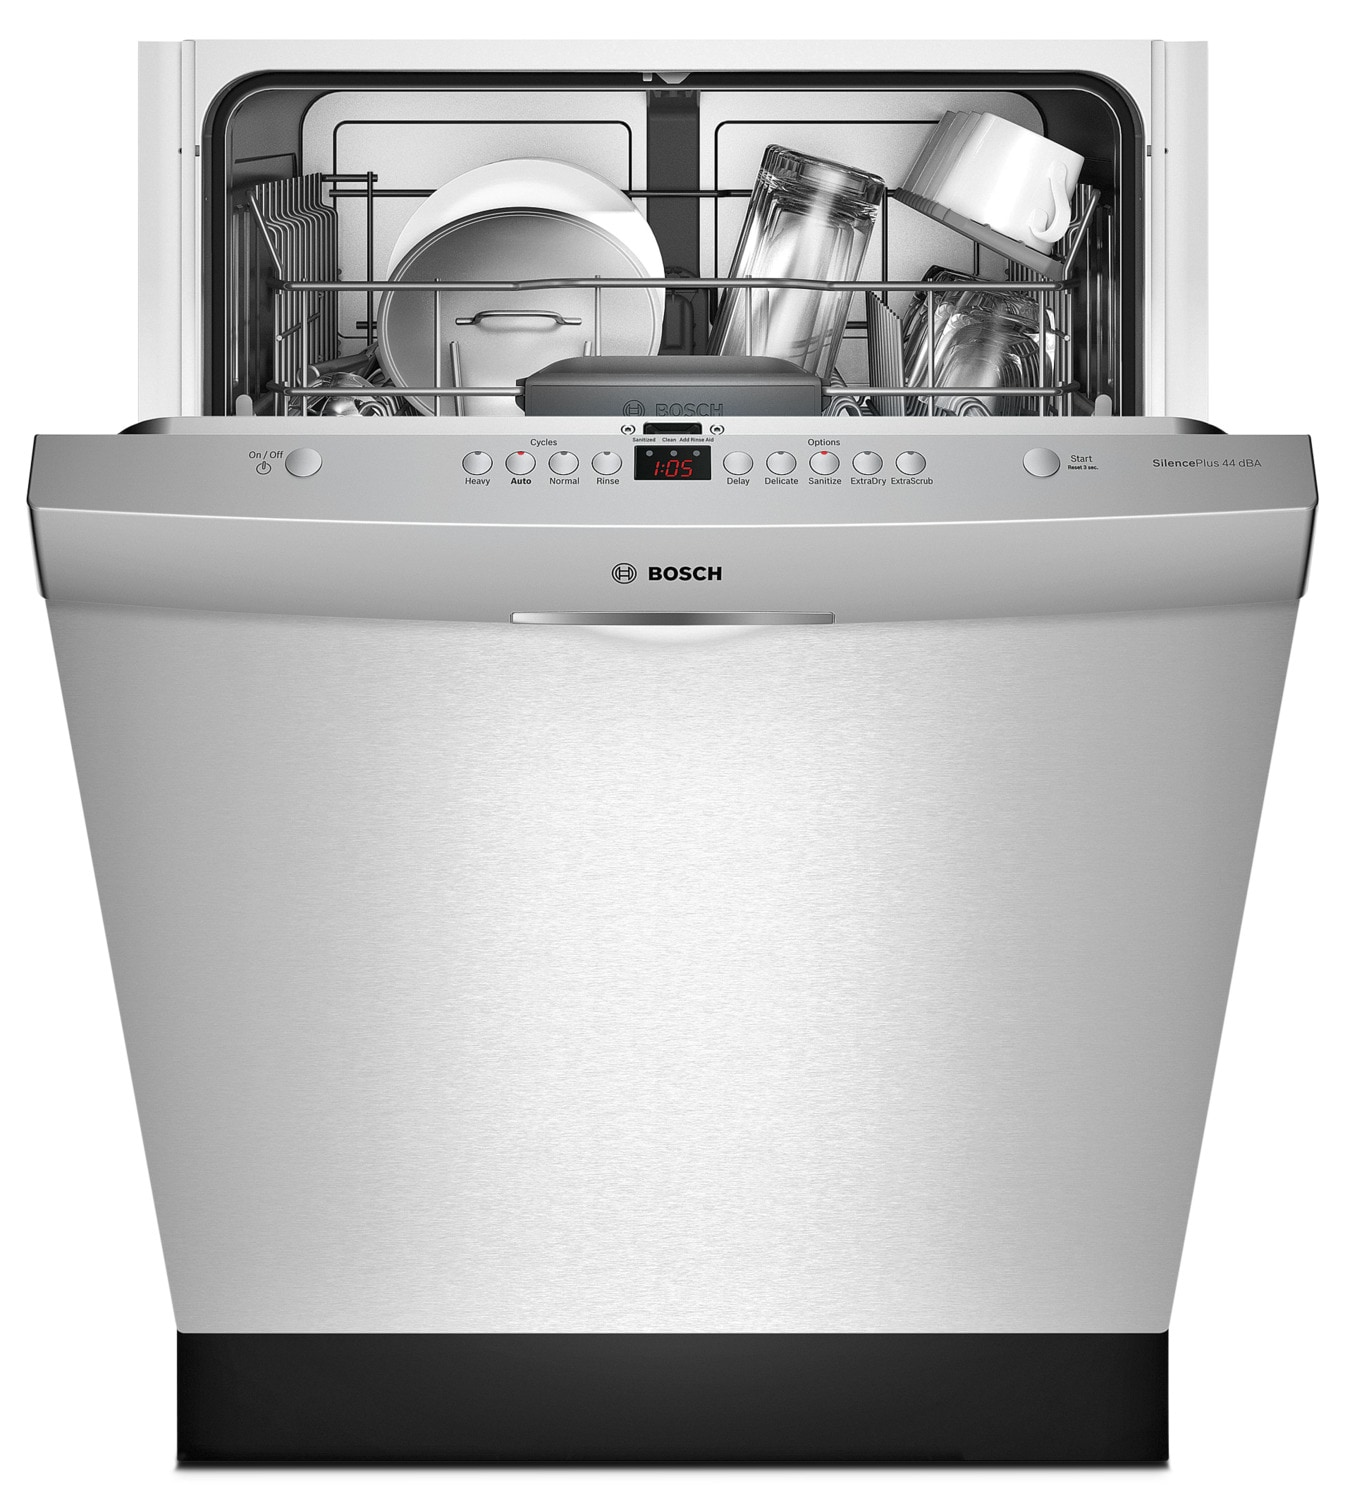 Clean-Up - Bosch 300 Series Scoop Handle Built-In Dishwasher – SHS63VL5UC